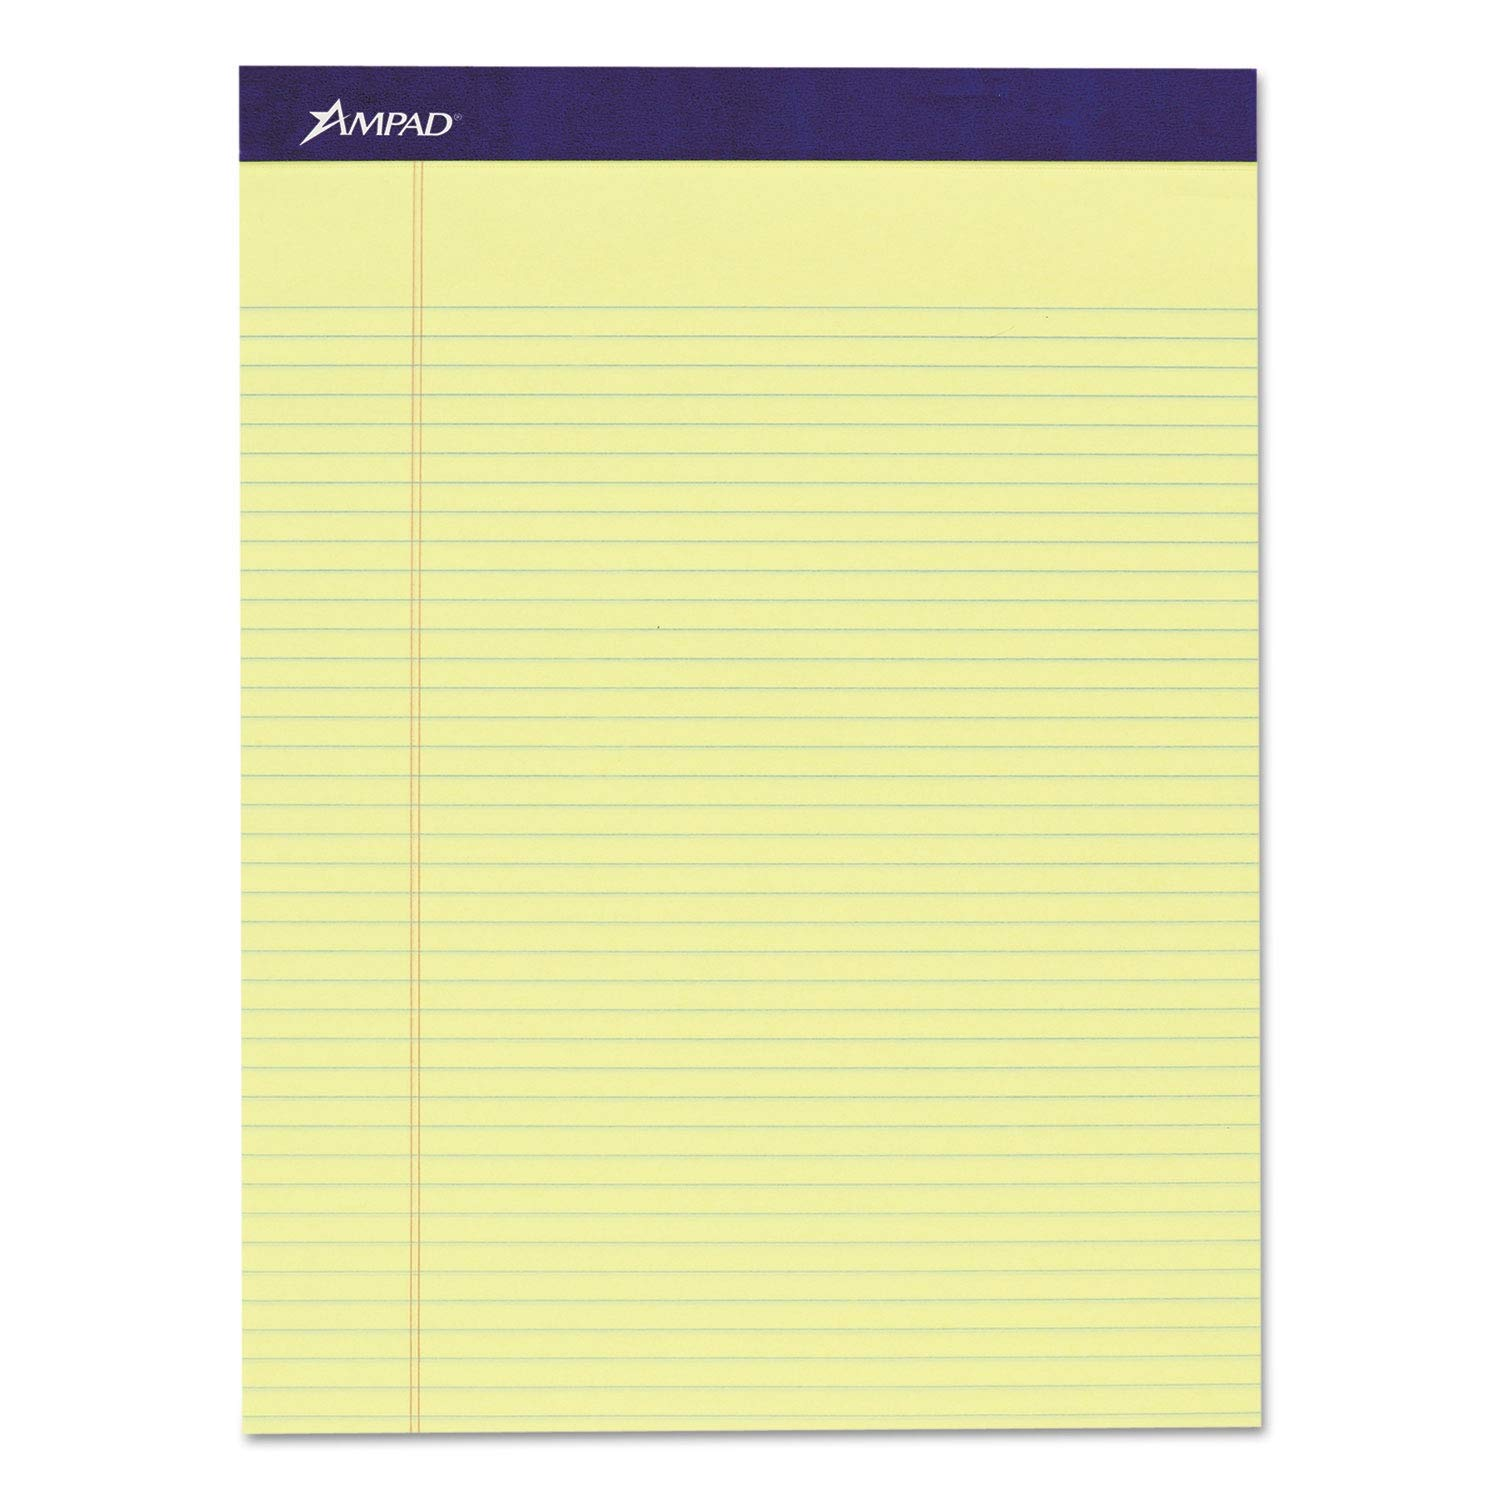 Ampad Mead Legal Ruled Pad, 8 1/2 x 11, Canary, 50 Sheets, 4 Pads/Pack - 20215 (Pack of 2) by Ampad (Image #1)